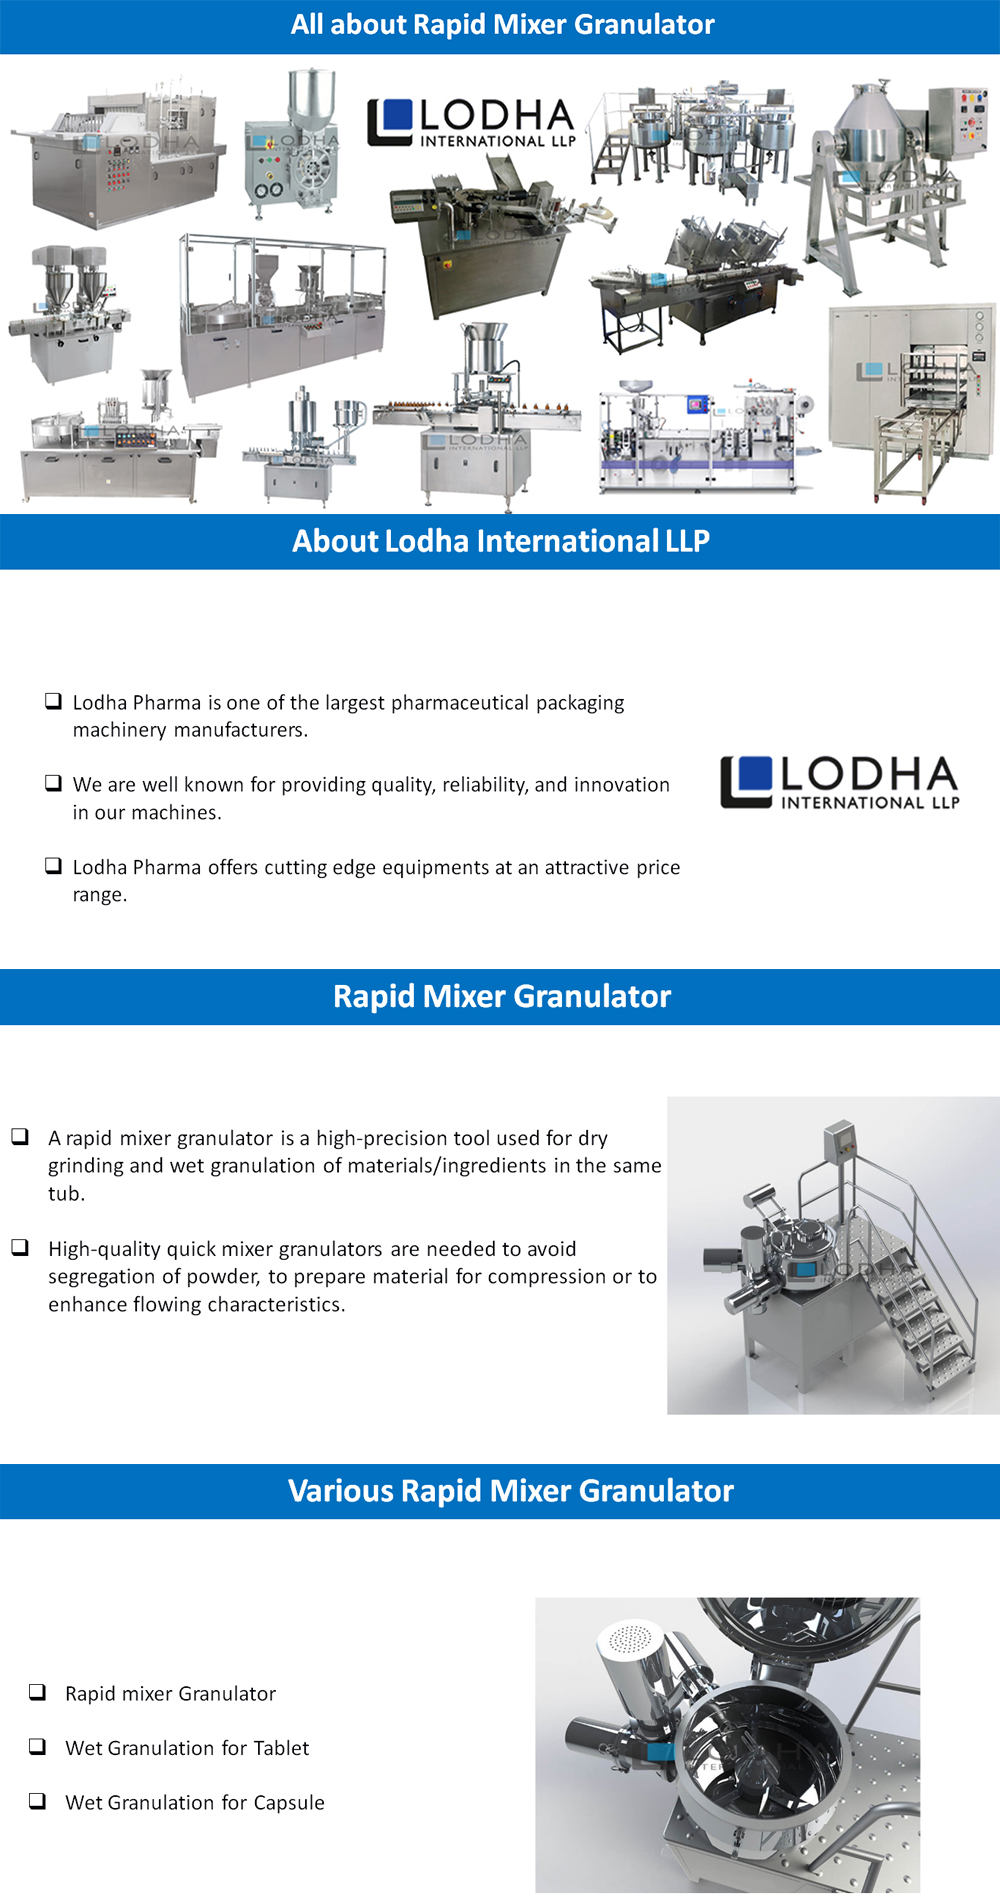 All about Rapid Mixer Granulator